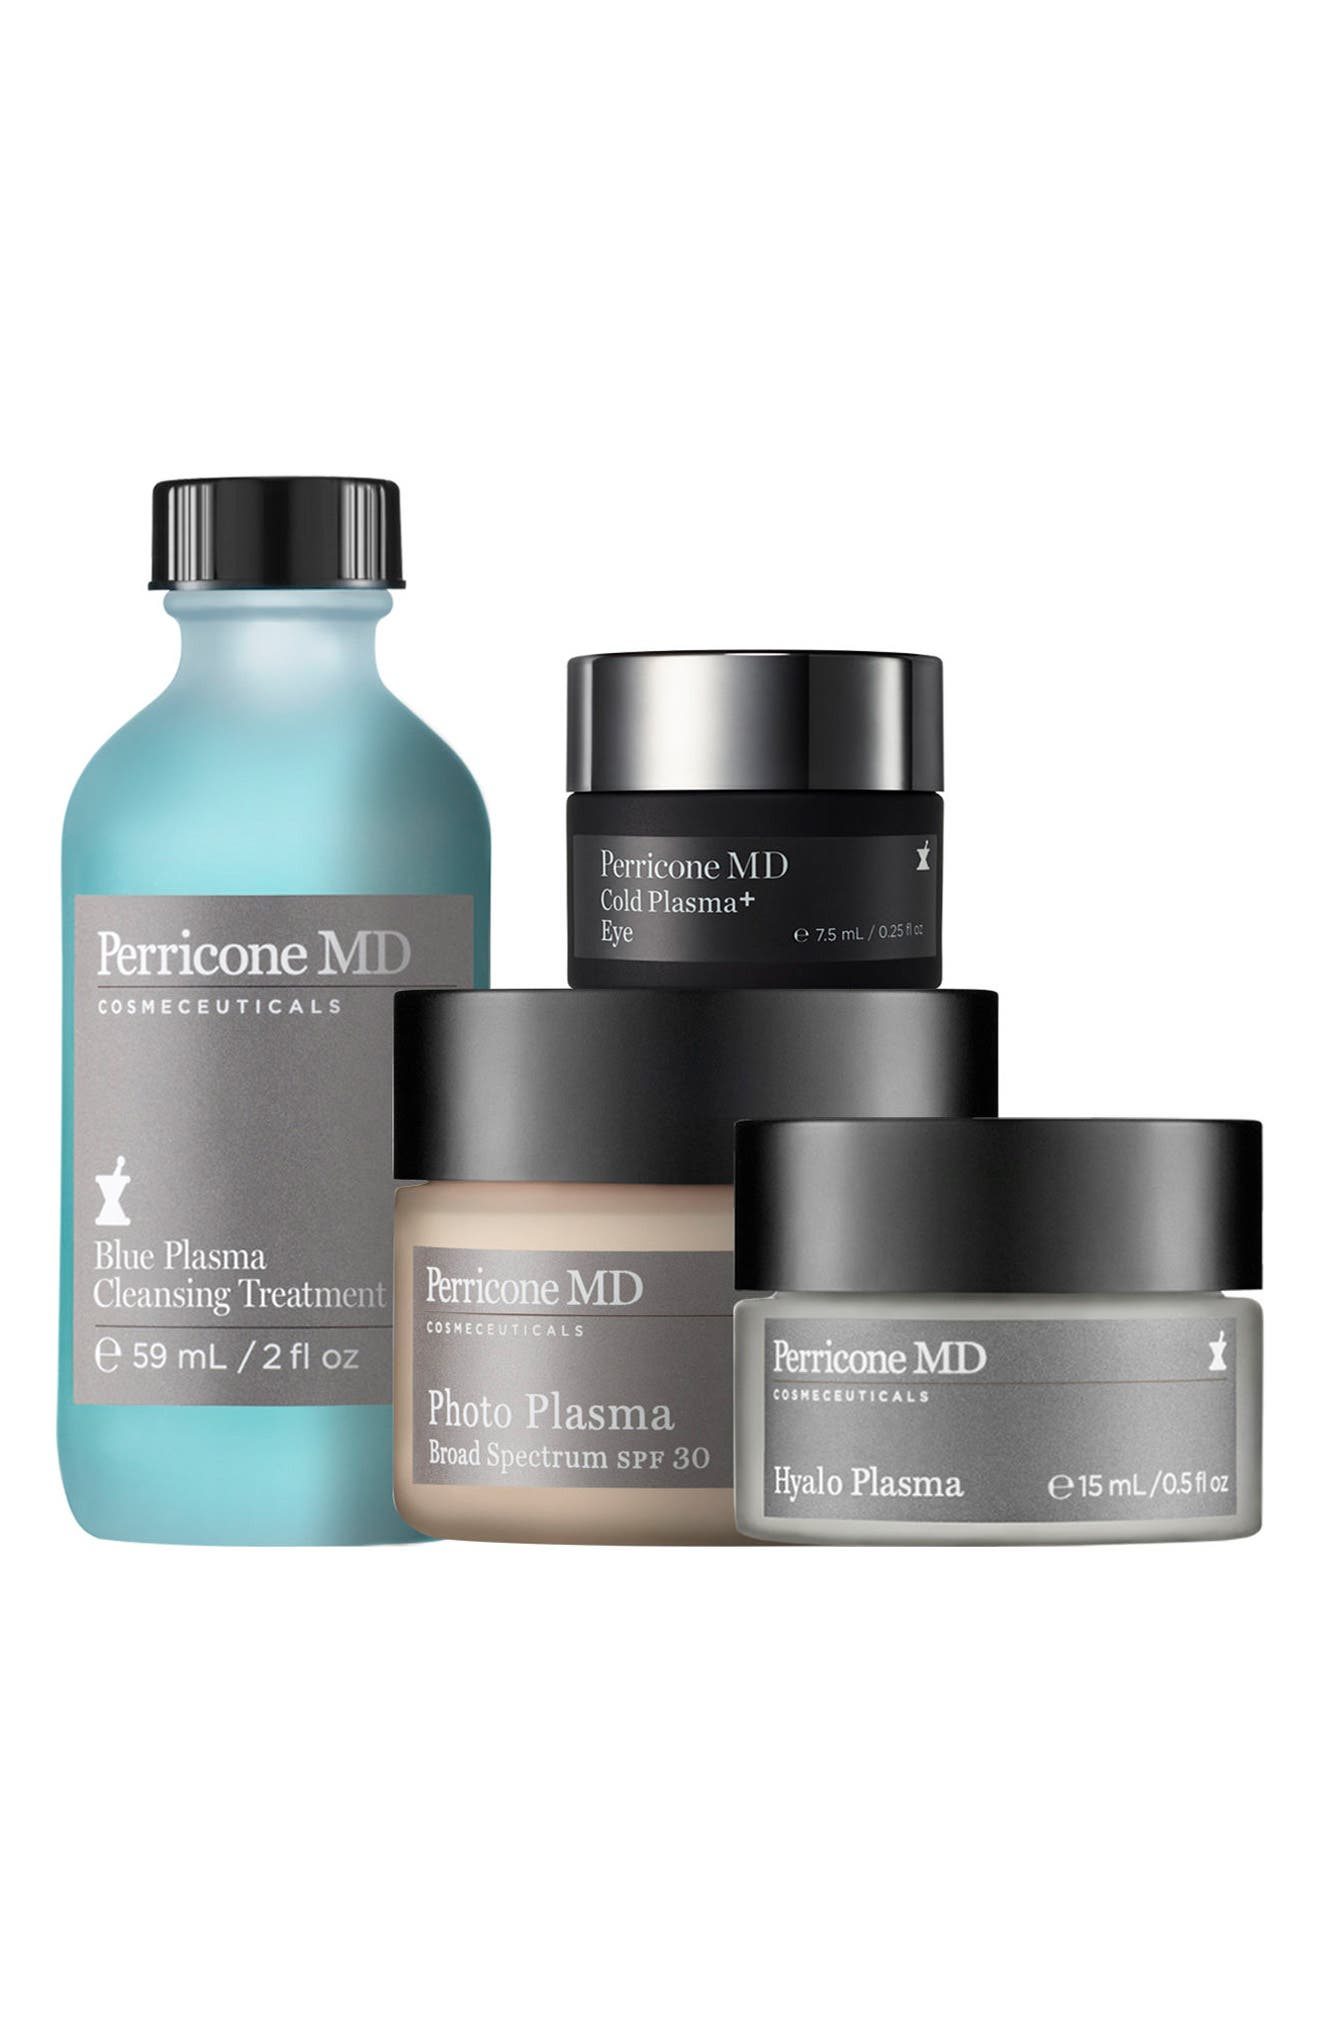 Perricone MD Smoothing & Brightening Essentials Set ($149 Value)